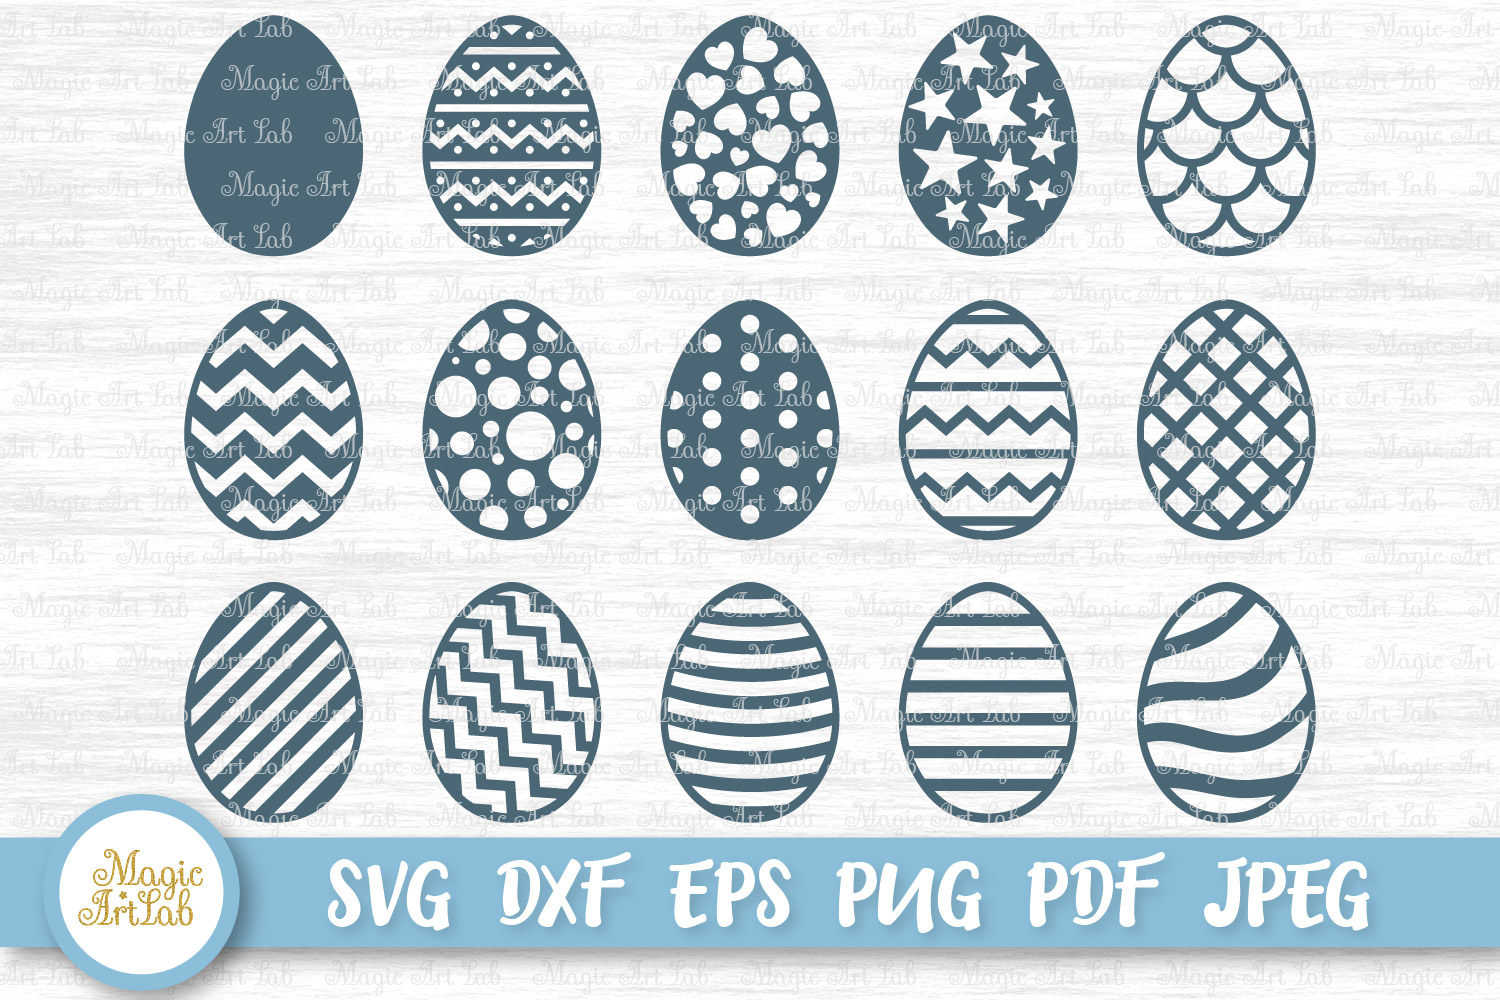 Download Free Easter Egg Graphic By Magicartlab Creative Fabrica for Cricut Explore, Silhouette and other cutting machines.